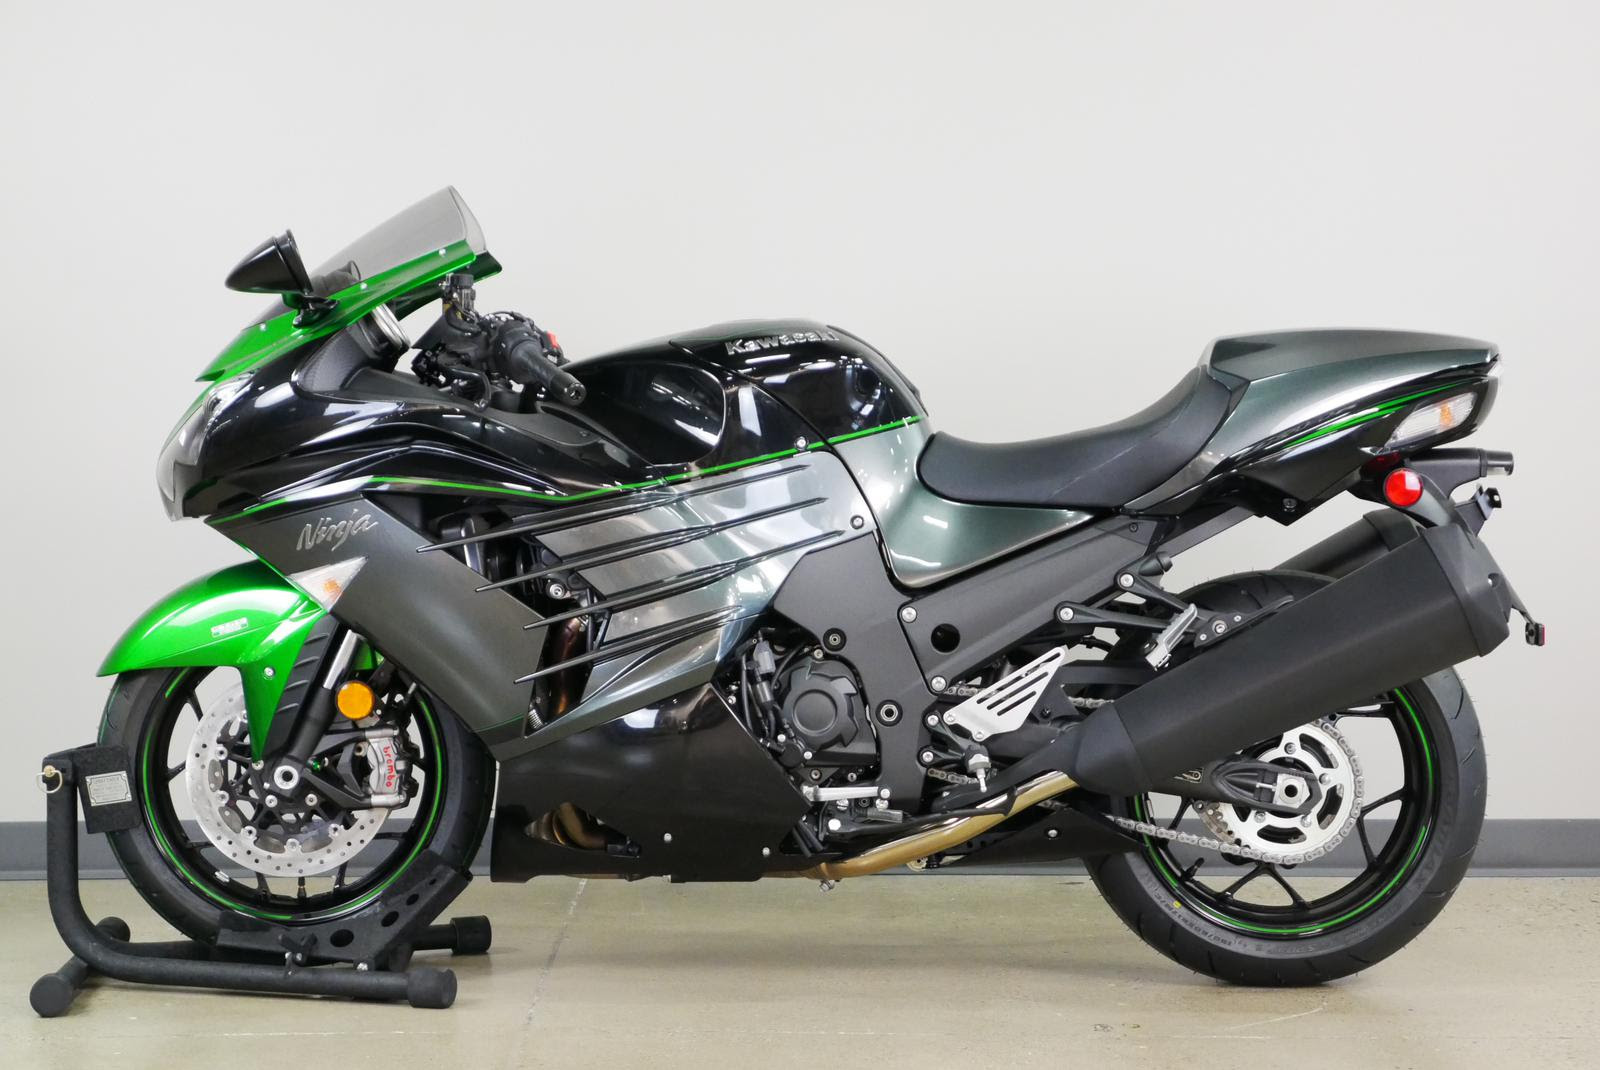 2019 Kawasaki Ninja Zx 14r Abs For Sale In Indianapolis In